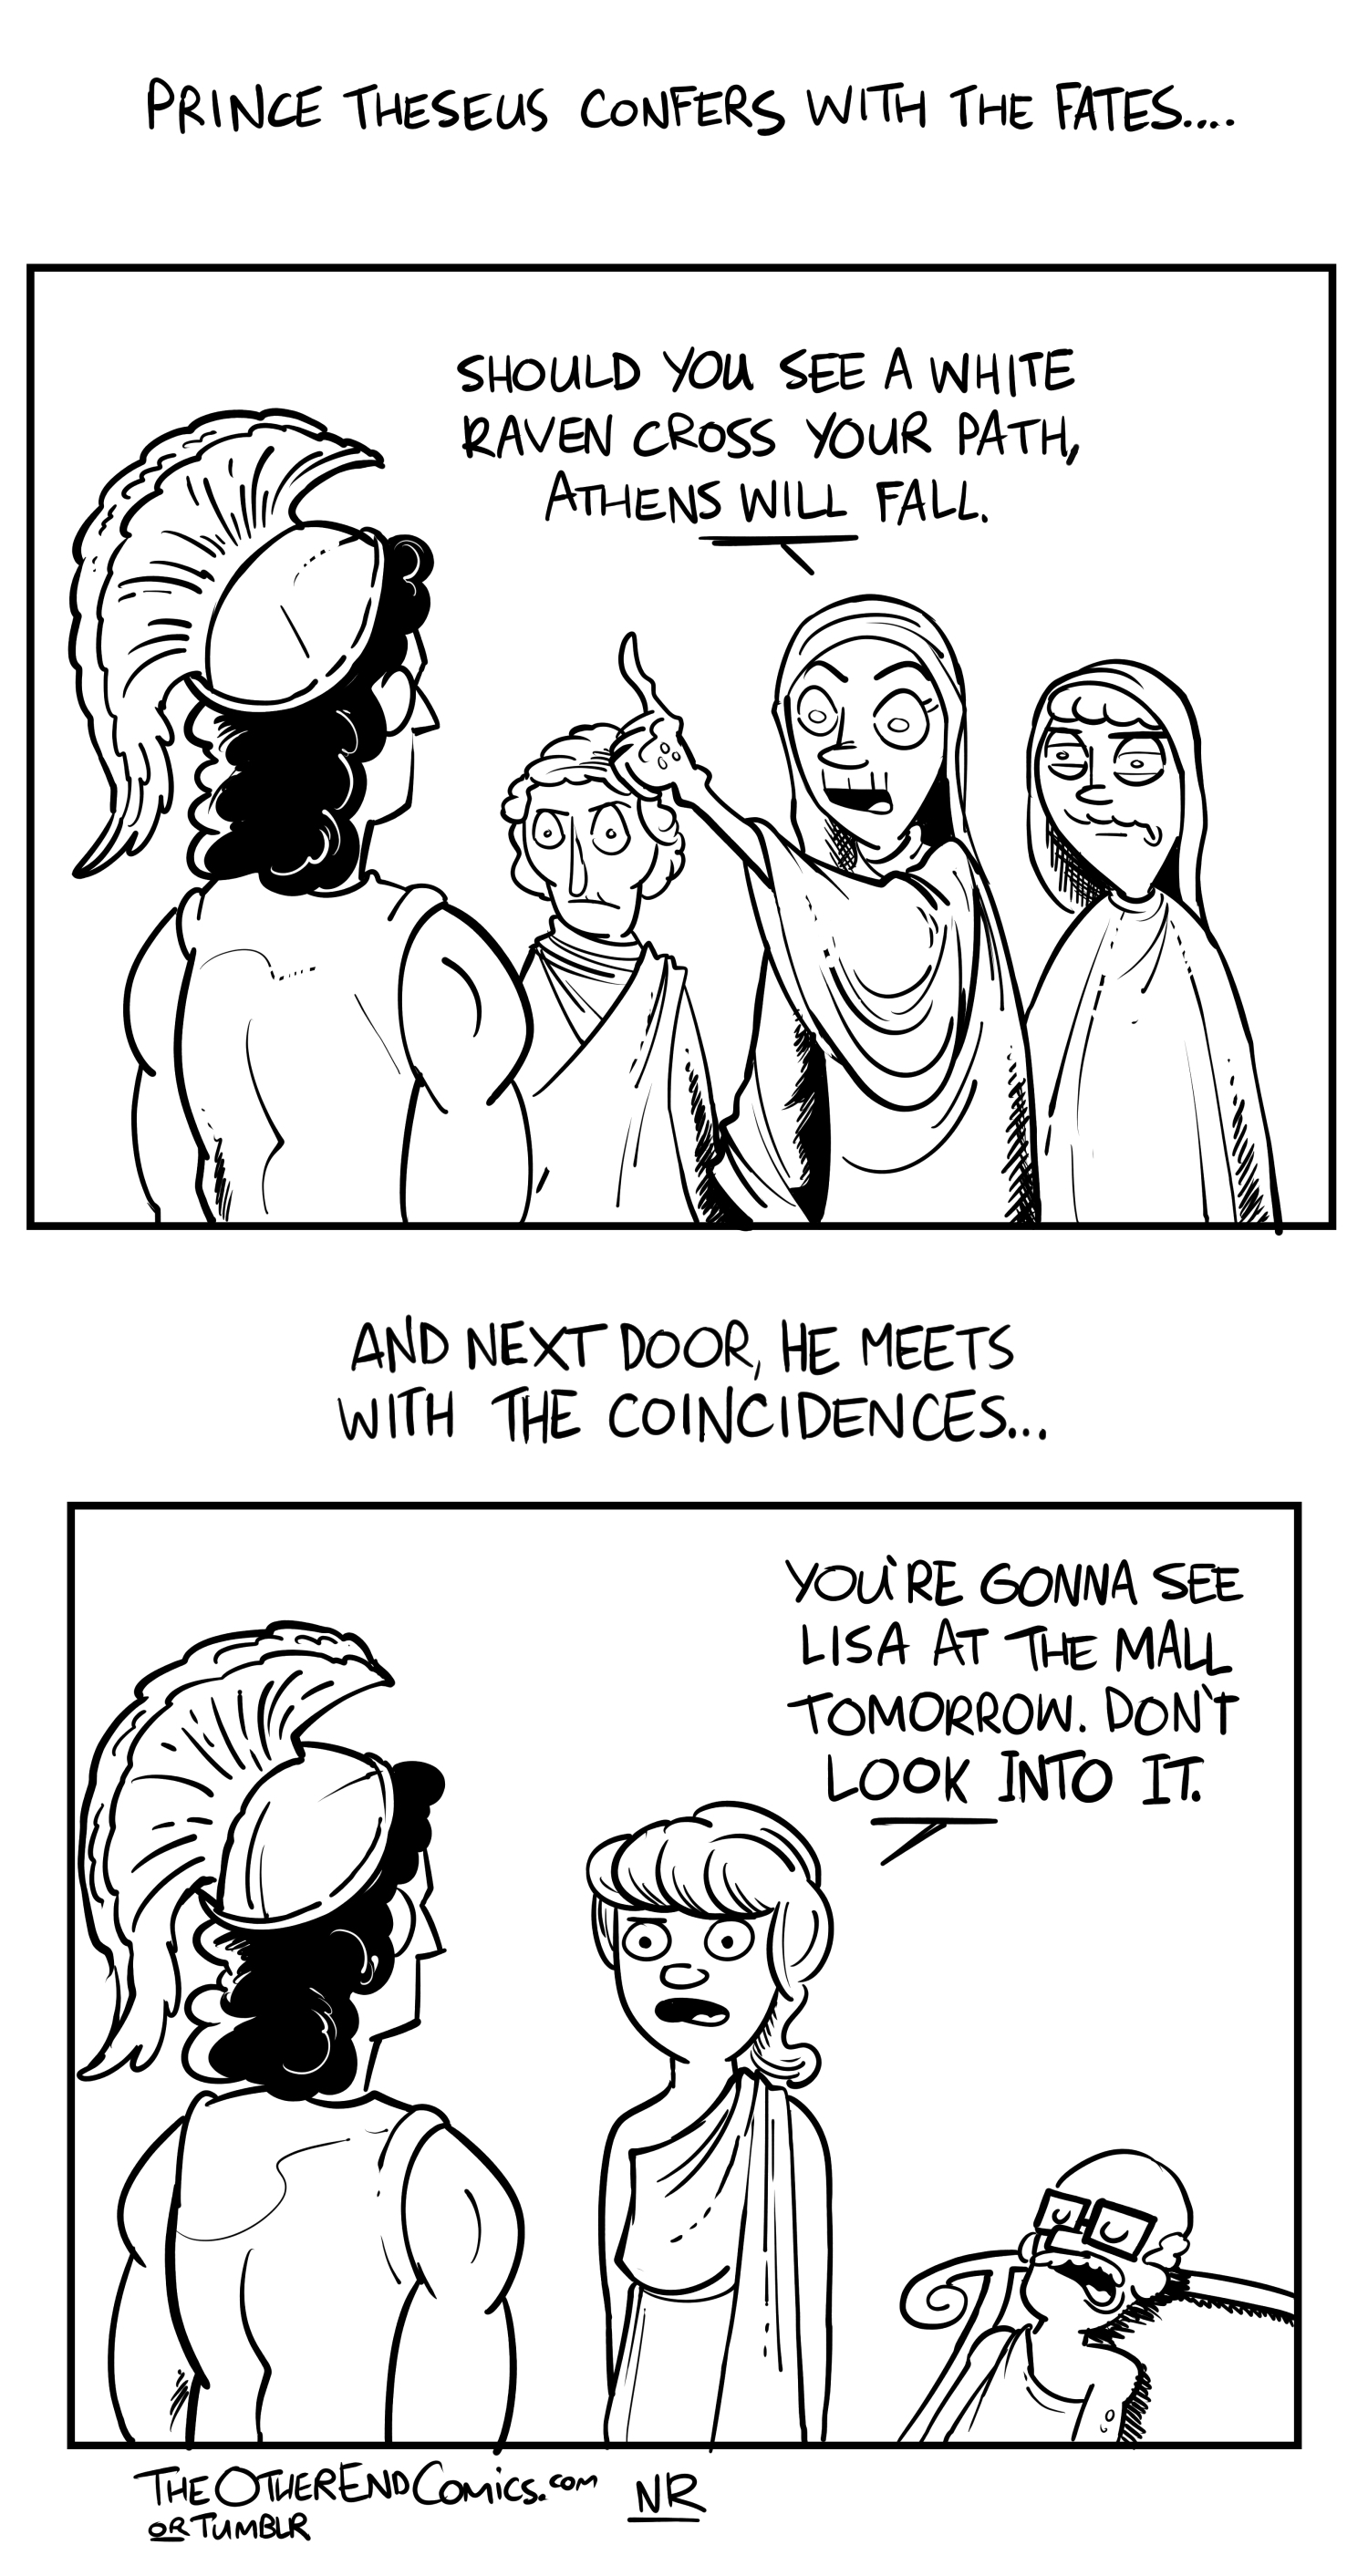 Lisa isn't even an ancient Greek name. This comic is so fake.